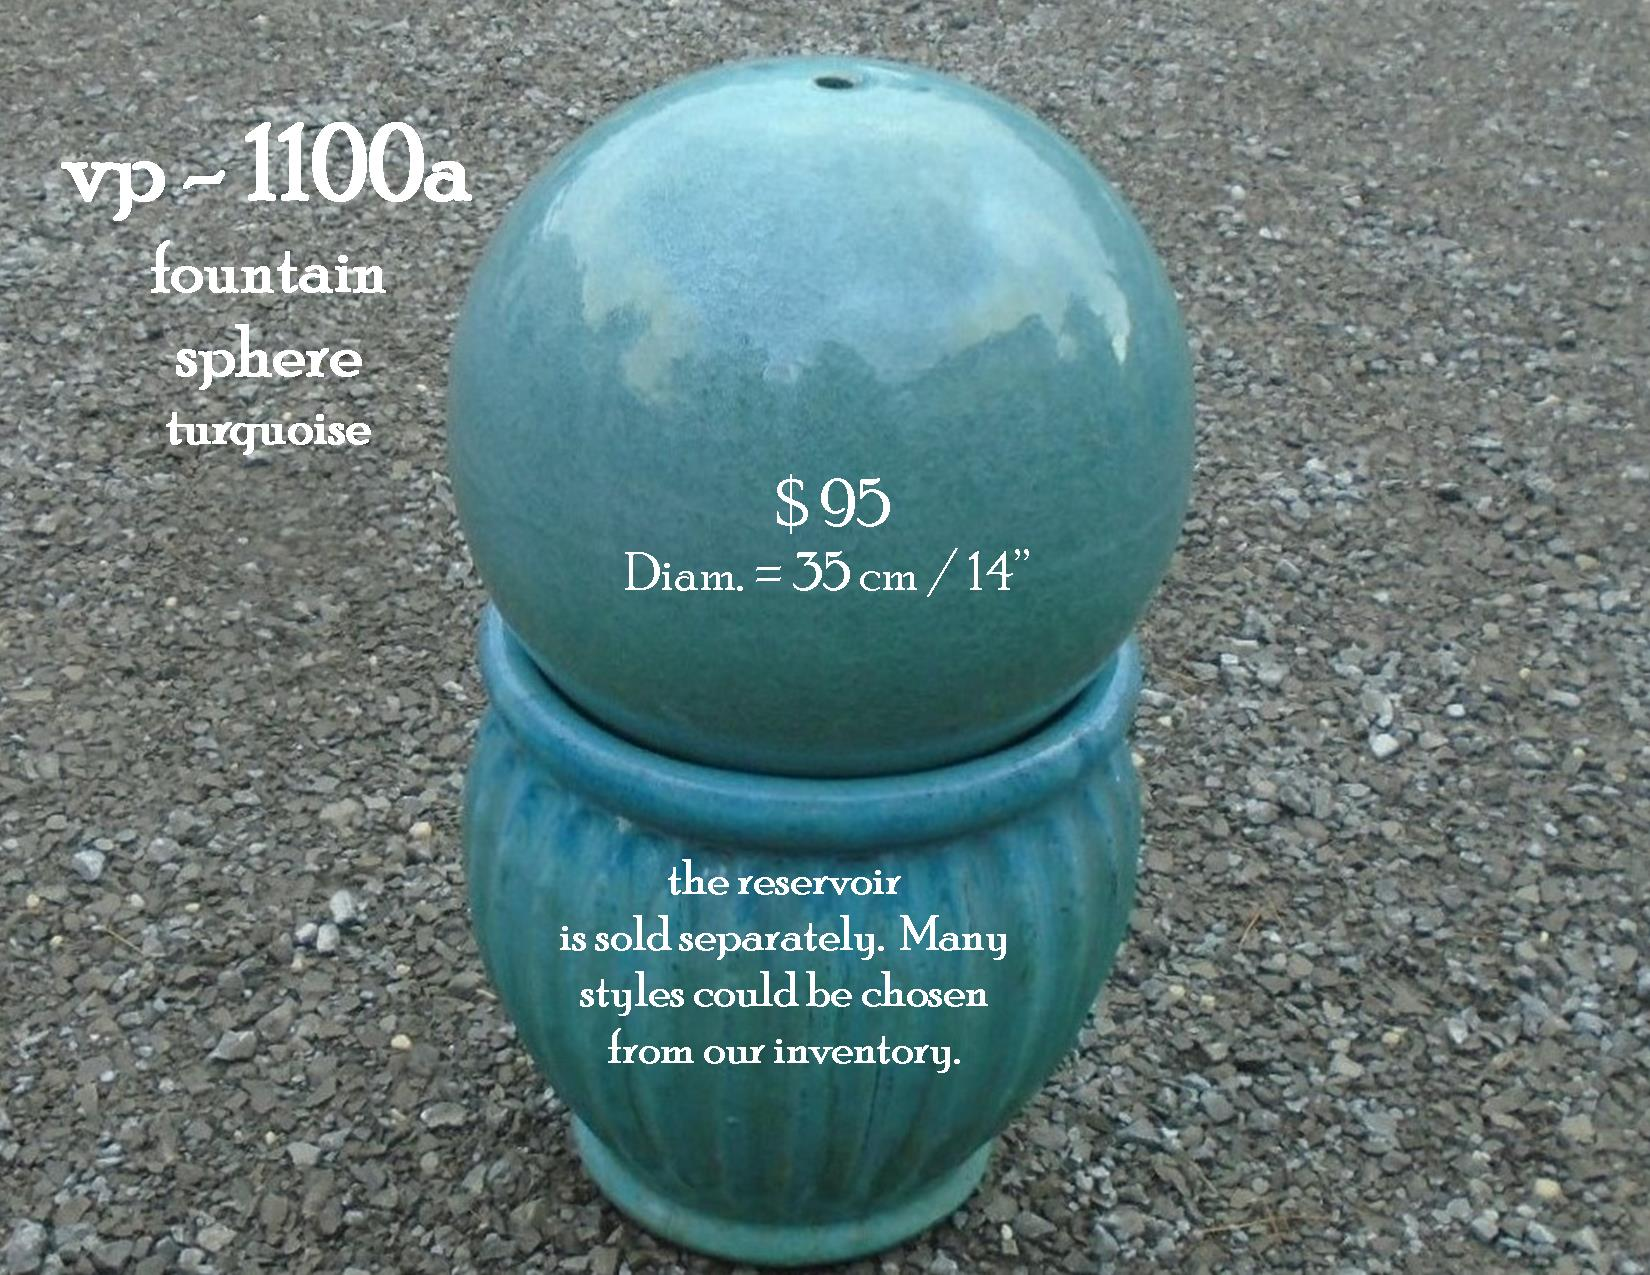 vp - 1100a turquoise fountain sphere